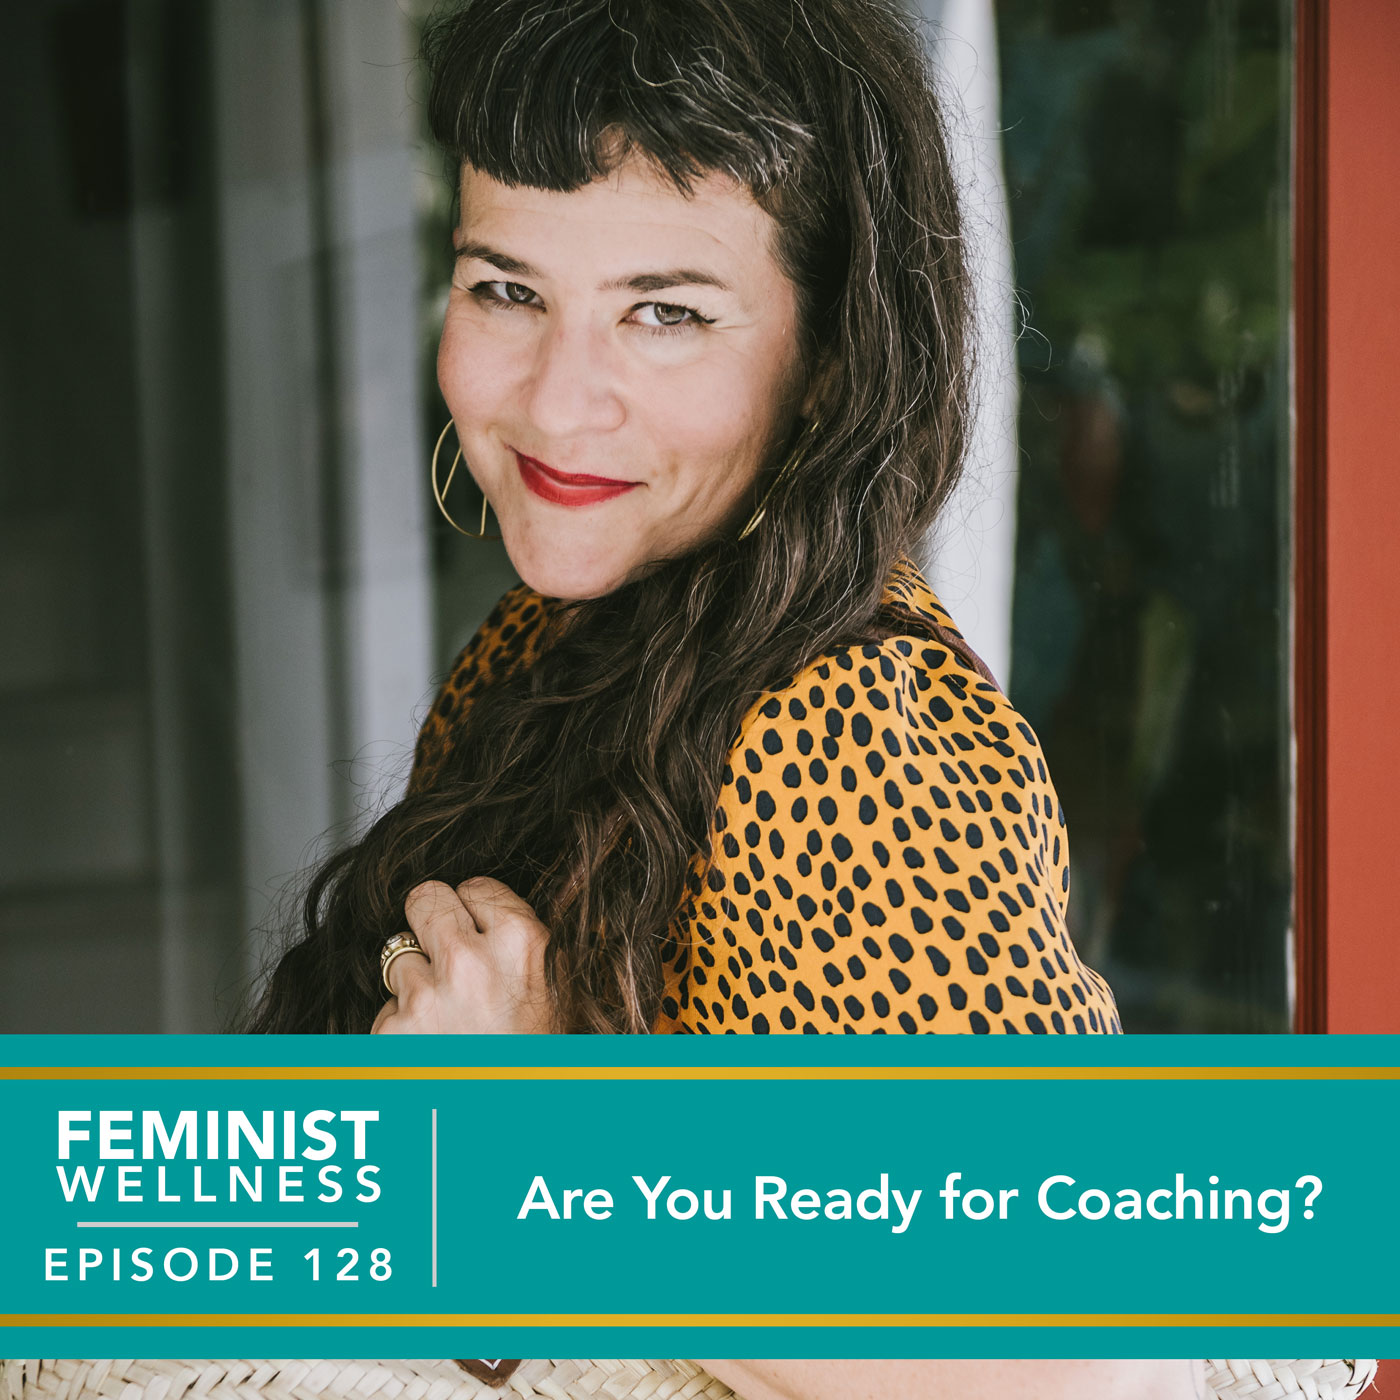 Feminist Wellness with Victoria Albina | Are You Ready for Coaching?